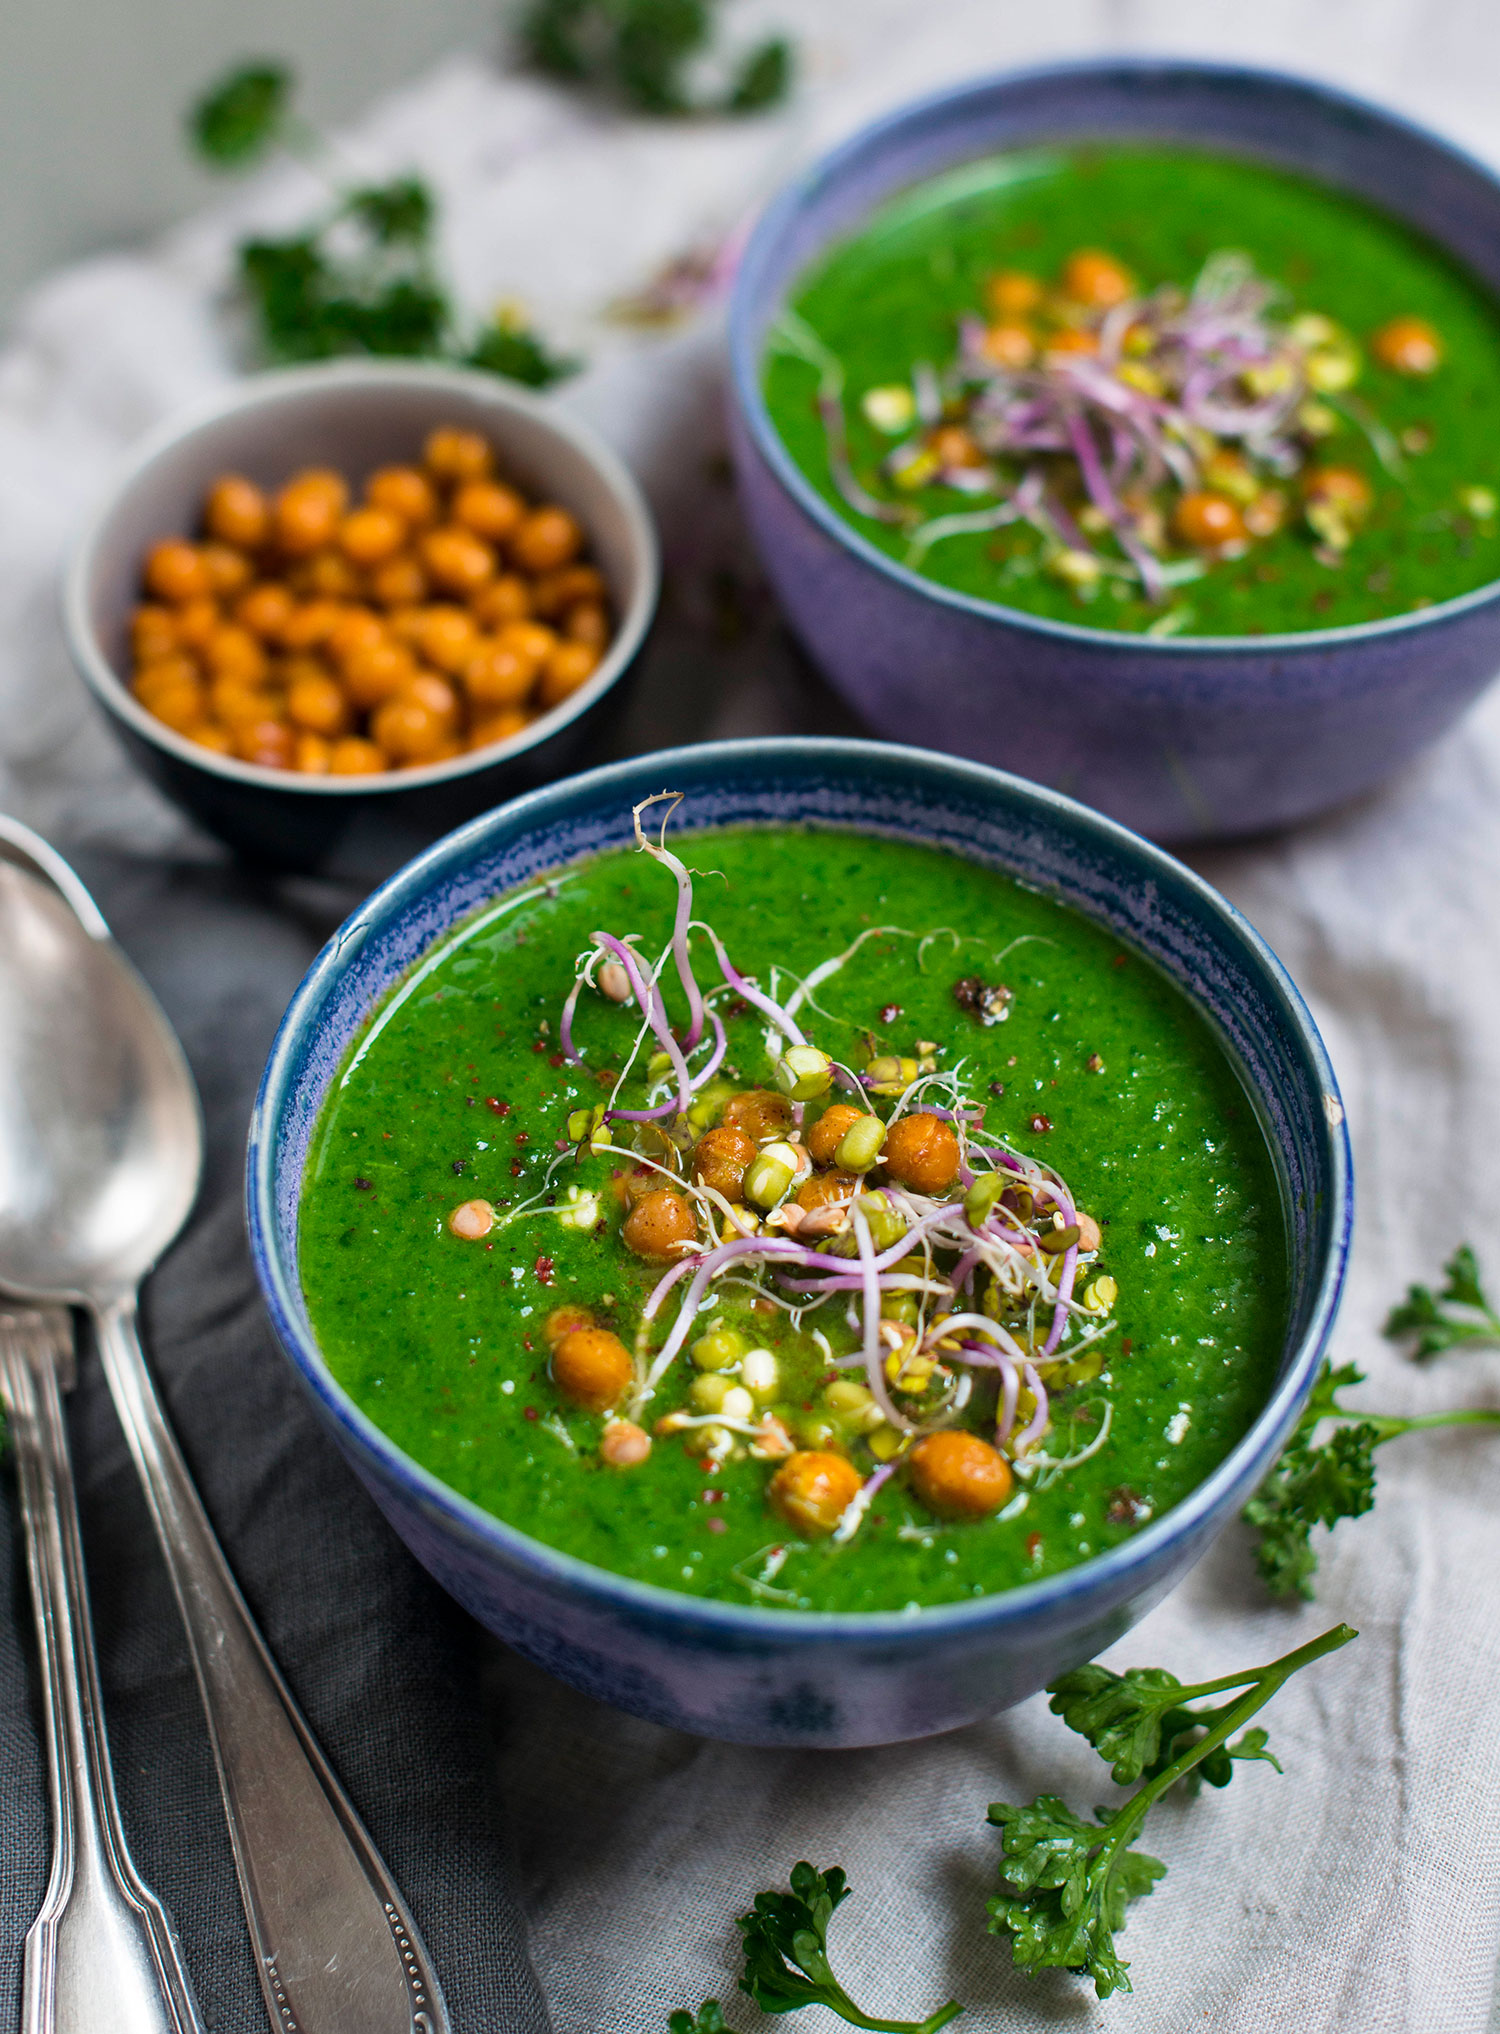 Vegan-spinach-parsley-soup-Florette-Lea-Lou-2